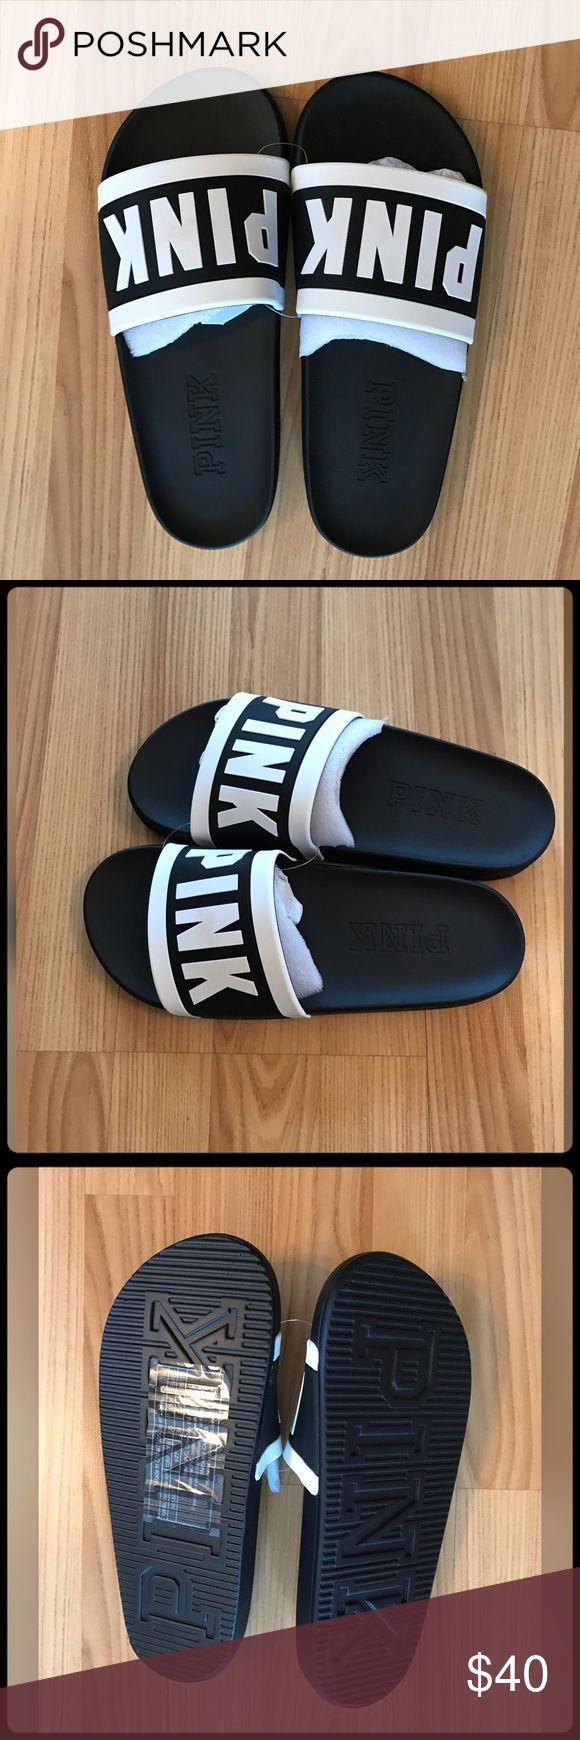 """✨ """"SOLD"""" PINK VICTORIA SLIDES ✨ Brand new! Never worn. Super cute slides Size M-7-8 ✨Note- Runs big! I'm a size 7 and there too big for me! PINK Victoria's Secret Shoes"""